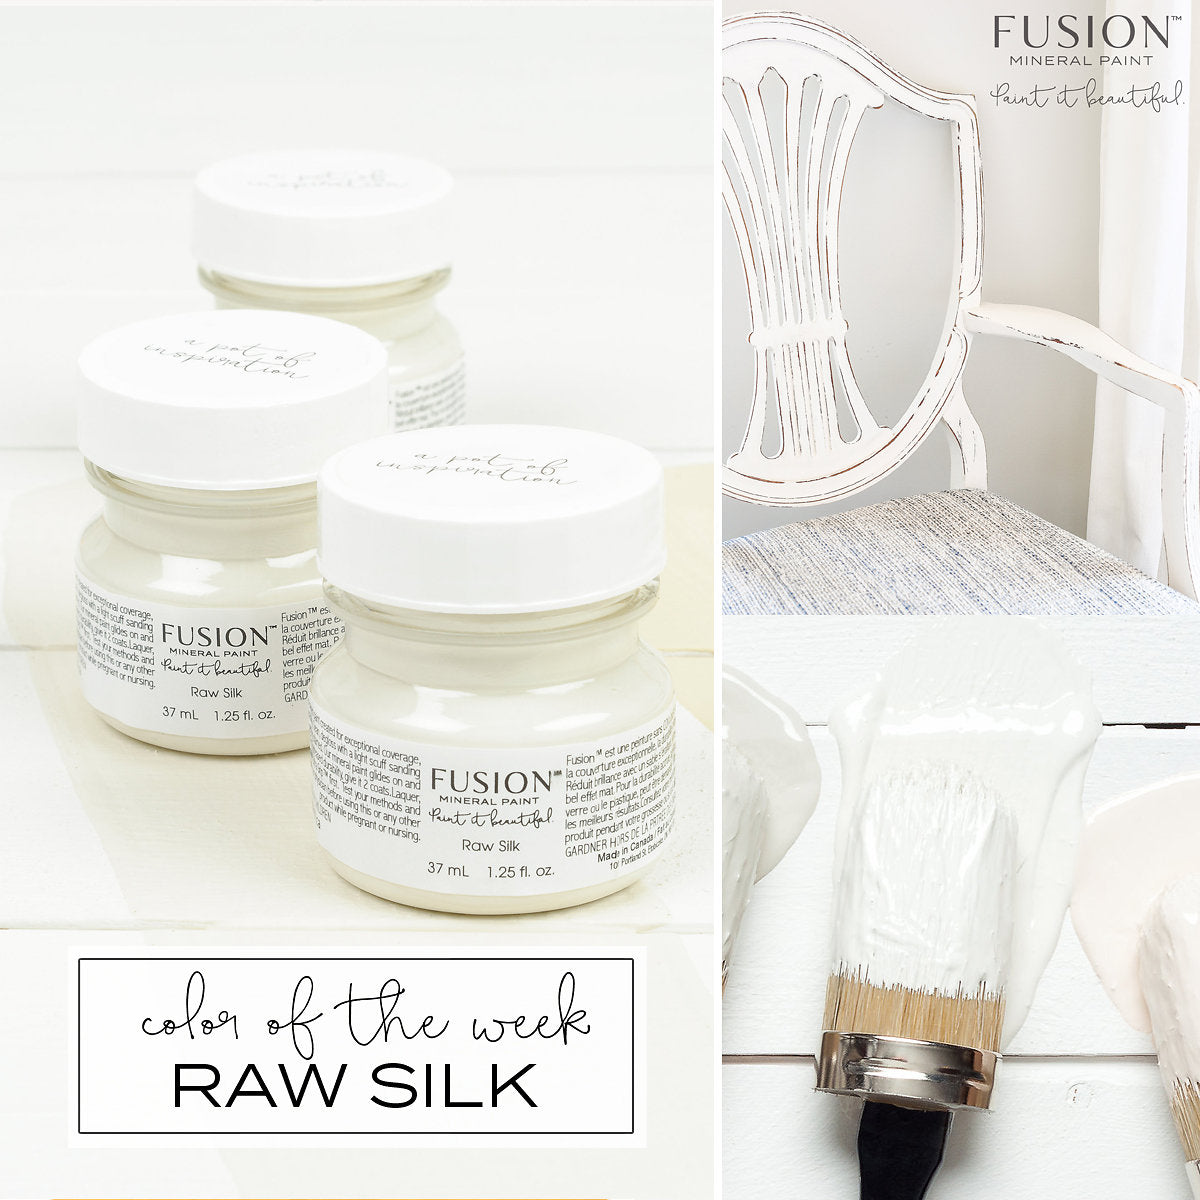 Raw Silk FUSION Mineral Paint